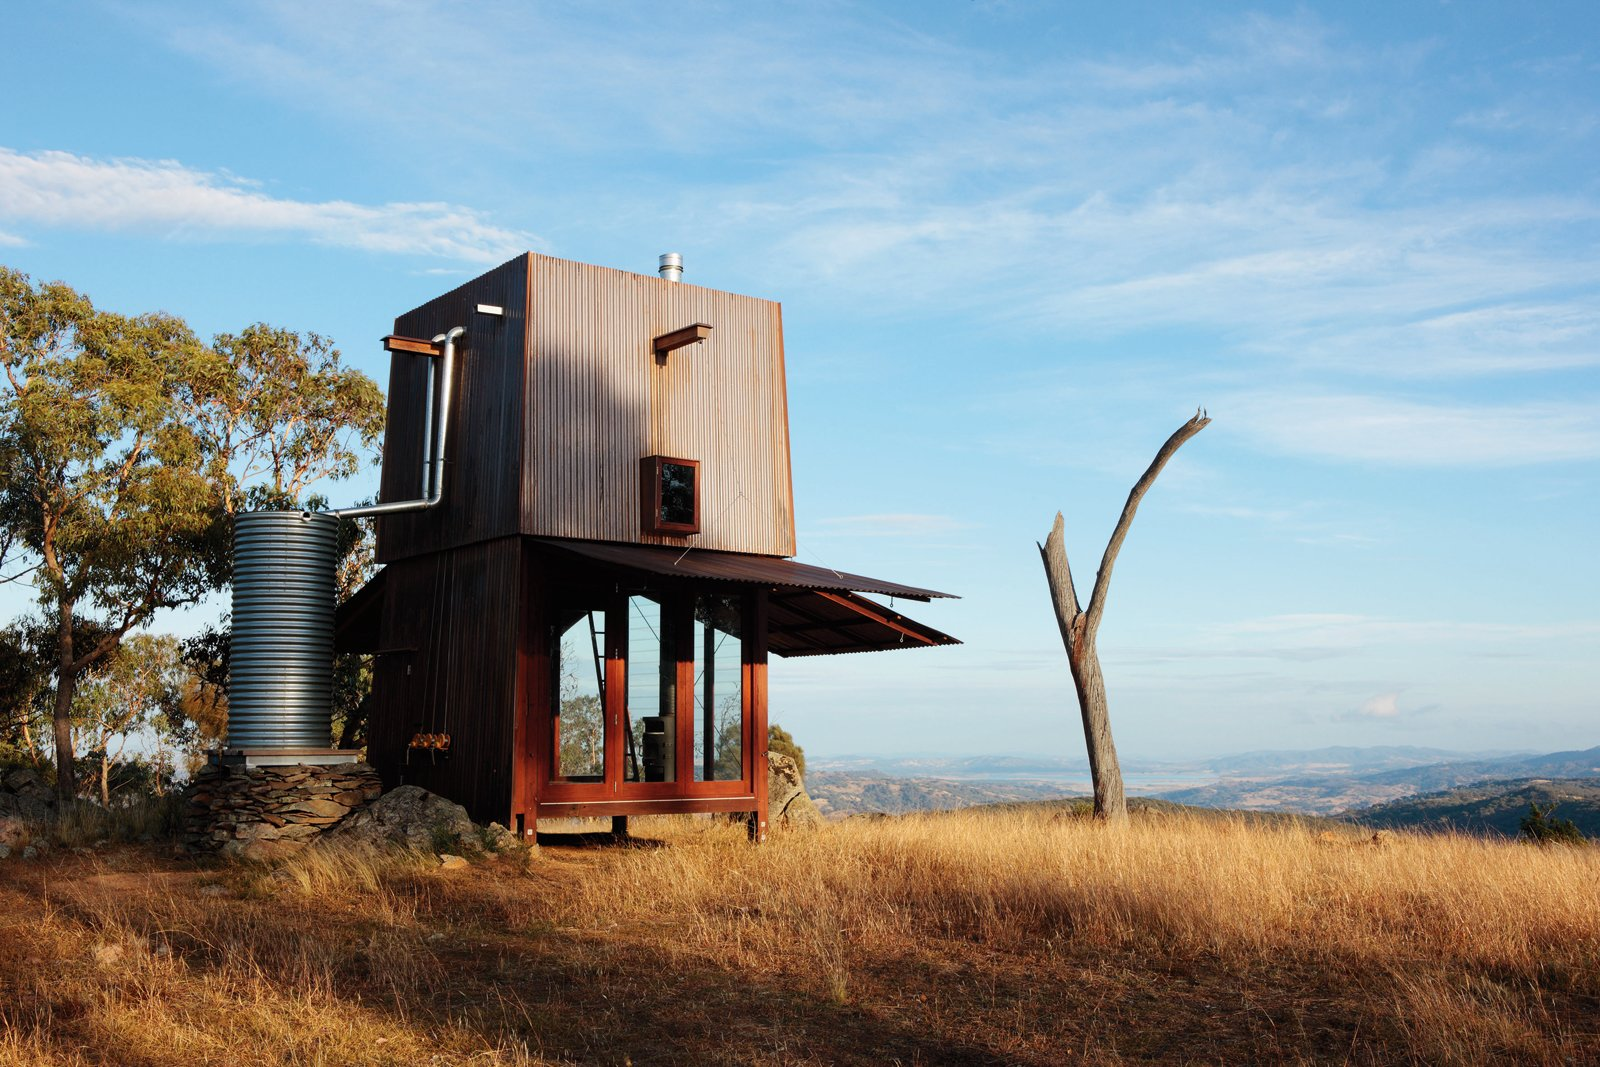 Rainwater is collected from the rooftop of the Permanent Camping! Mudgee abode by Casey Brown, NSW, Australia. Photo by Penny Clay  Green